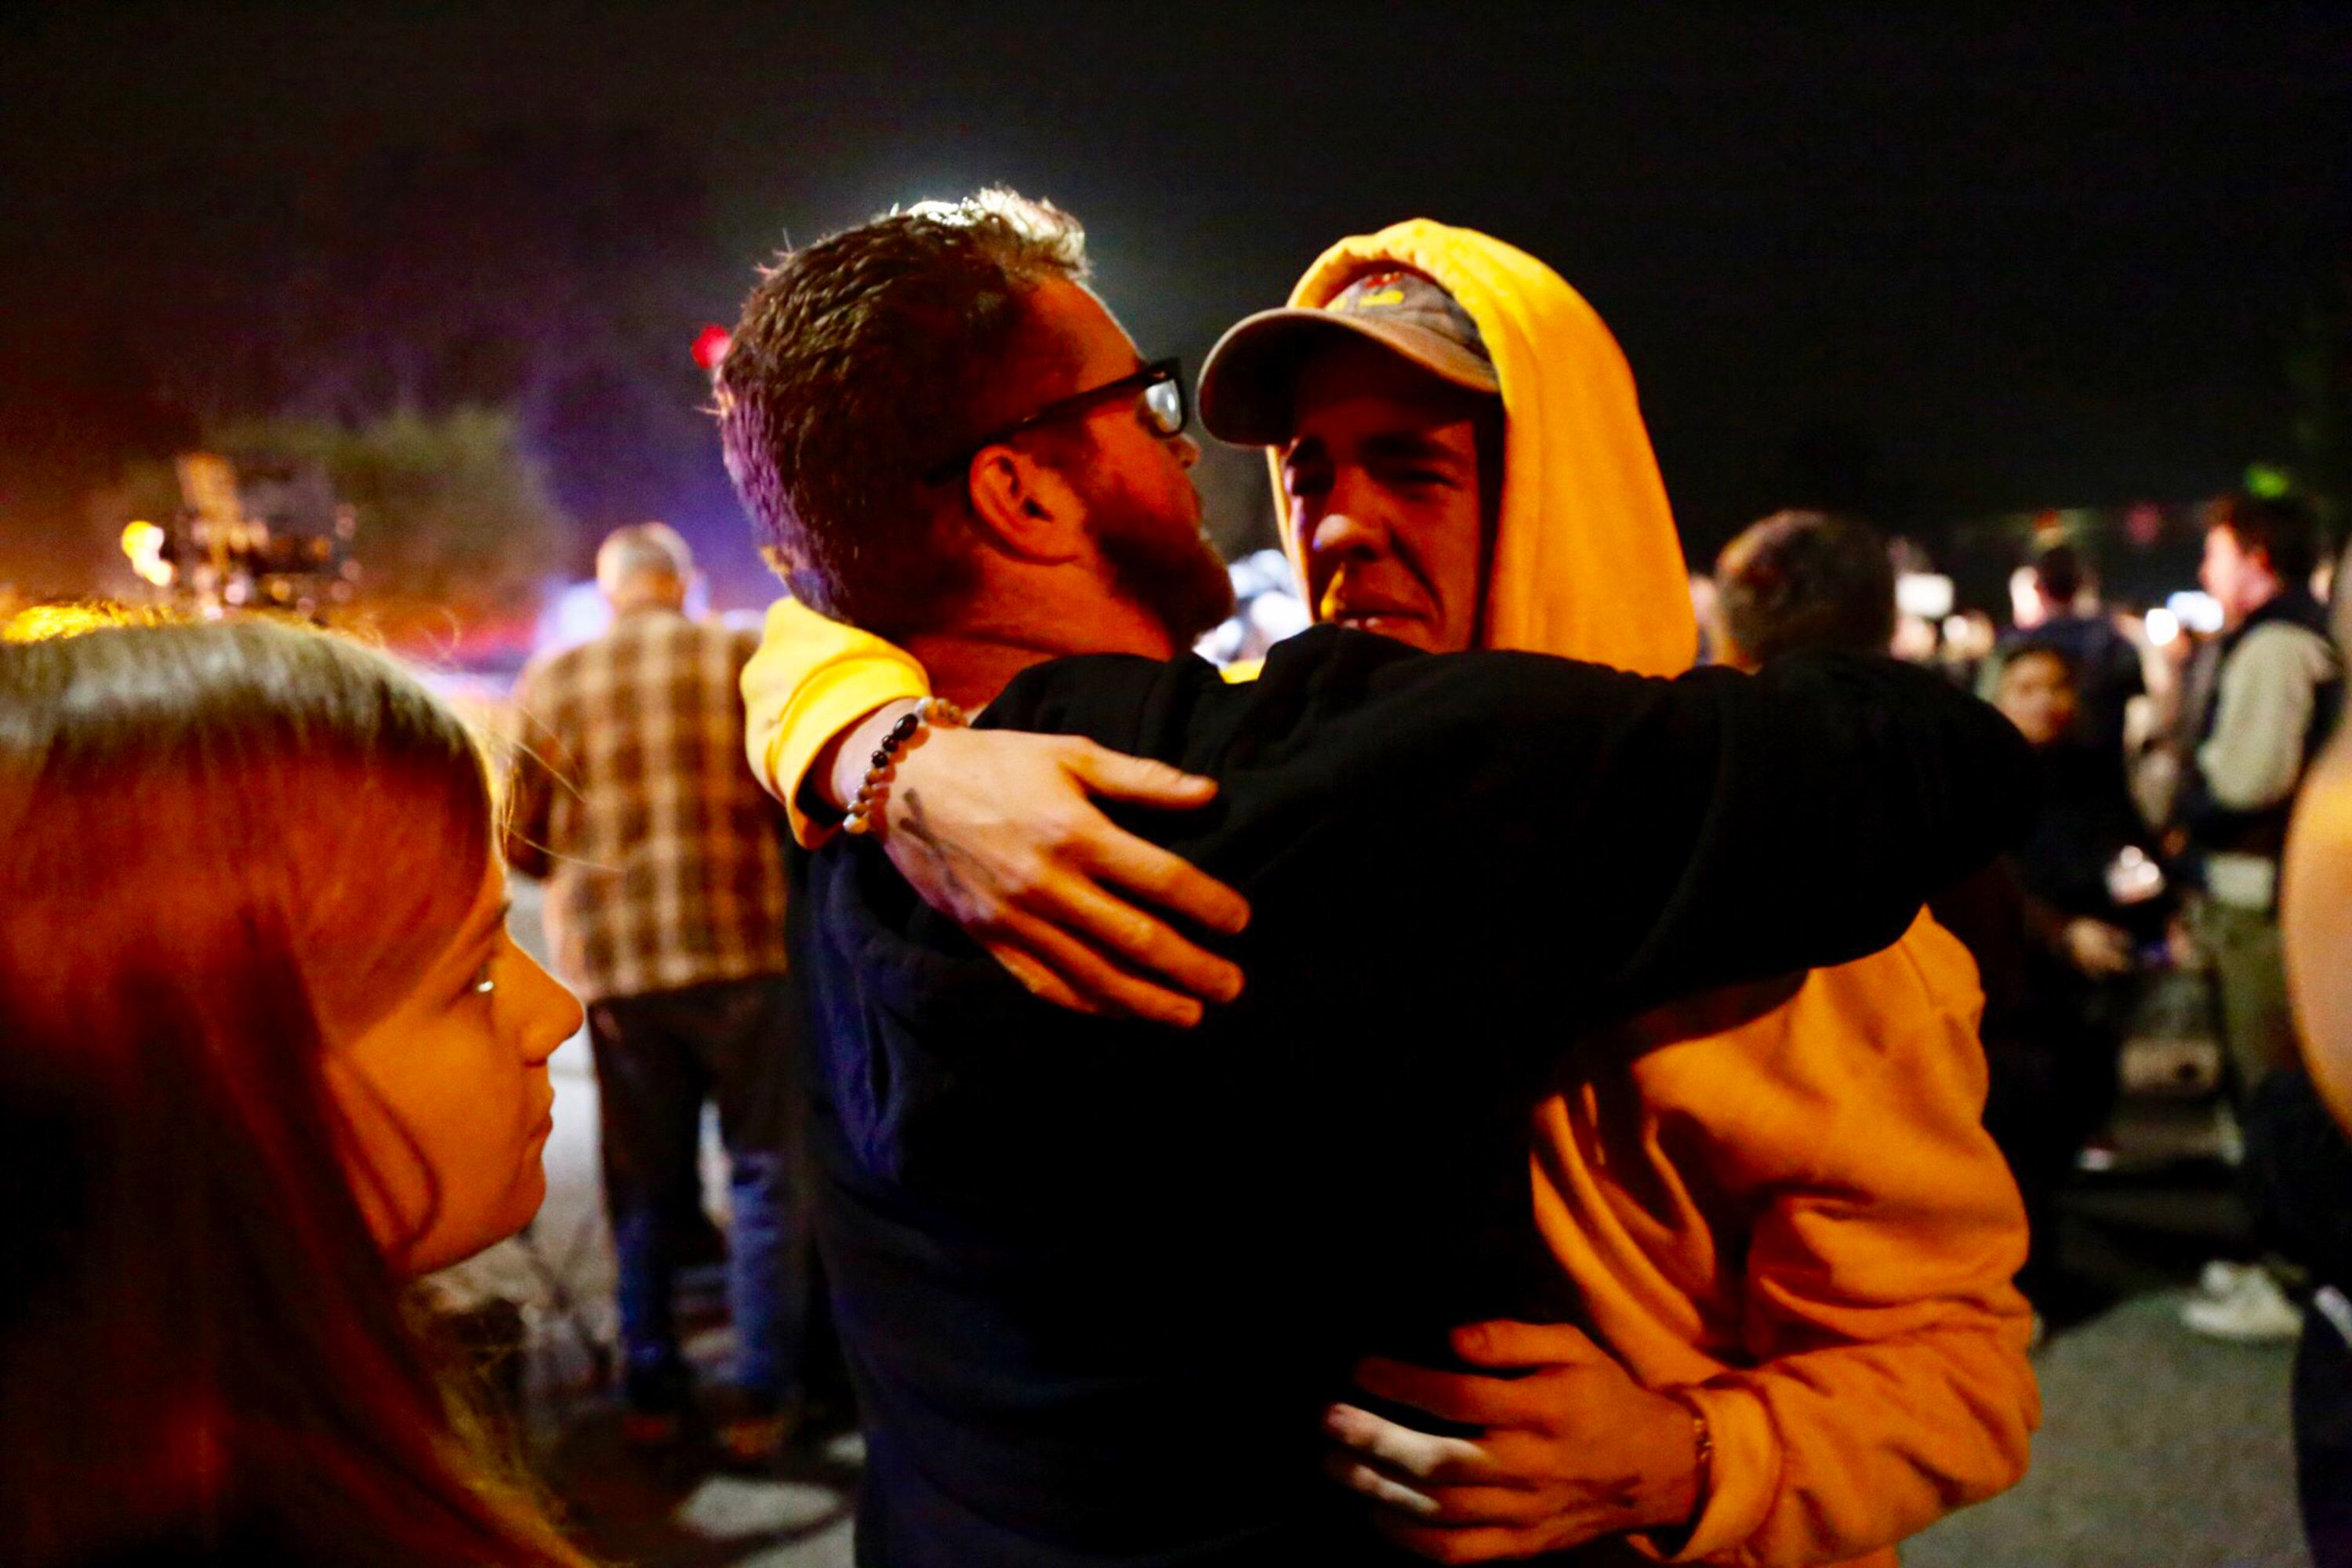 THOUSAND OAKS, CA - NOVEMBER 08: Holden Harrah, 21, (R) who witnessed the shooting hugs family and friends after a shooter wounded seven Wednesday night on November 8, 2018 in Thousand Oaks, California. The gunman burst into the bar around 11:20 p.m., cloaked in all black as he threw smoke bombs and began shooting at targets as young as 18 inside the Borderline Bar & Grill, authorities and witnesses said. (Photo by Al Seib / Los Angeles Times via Getty Images)